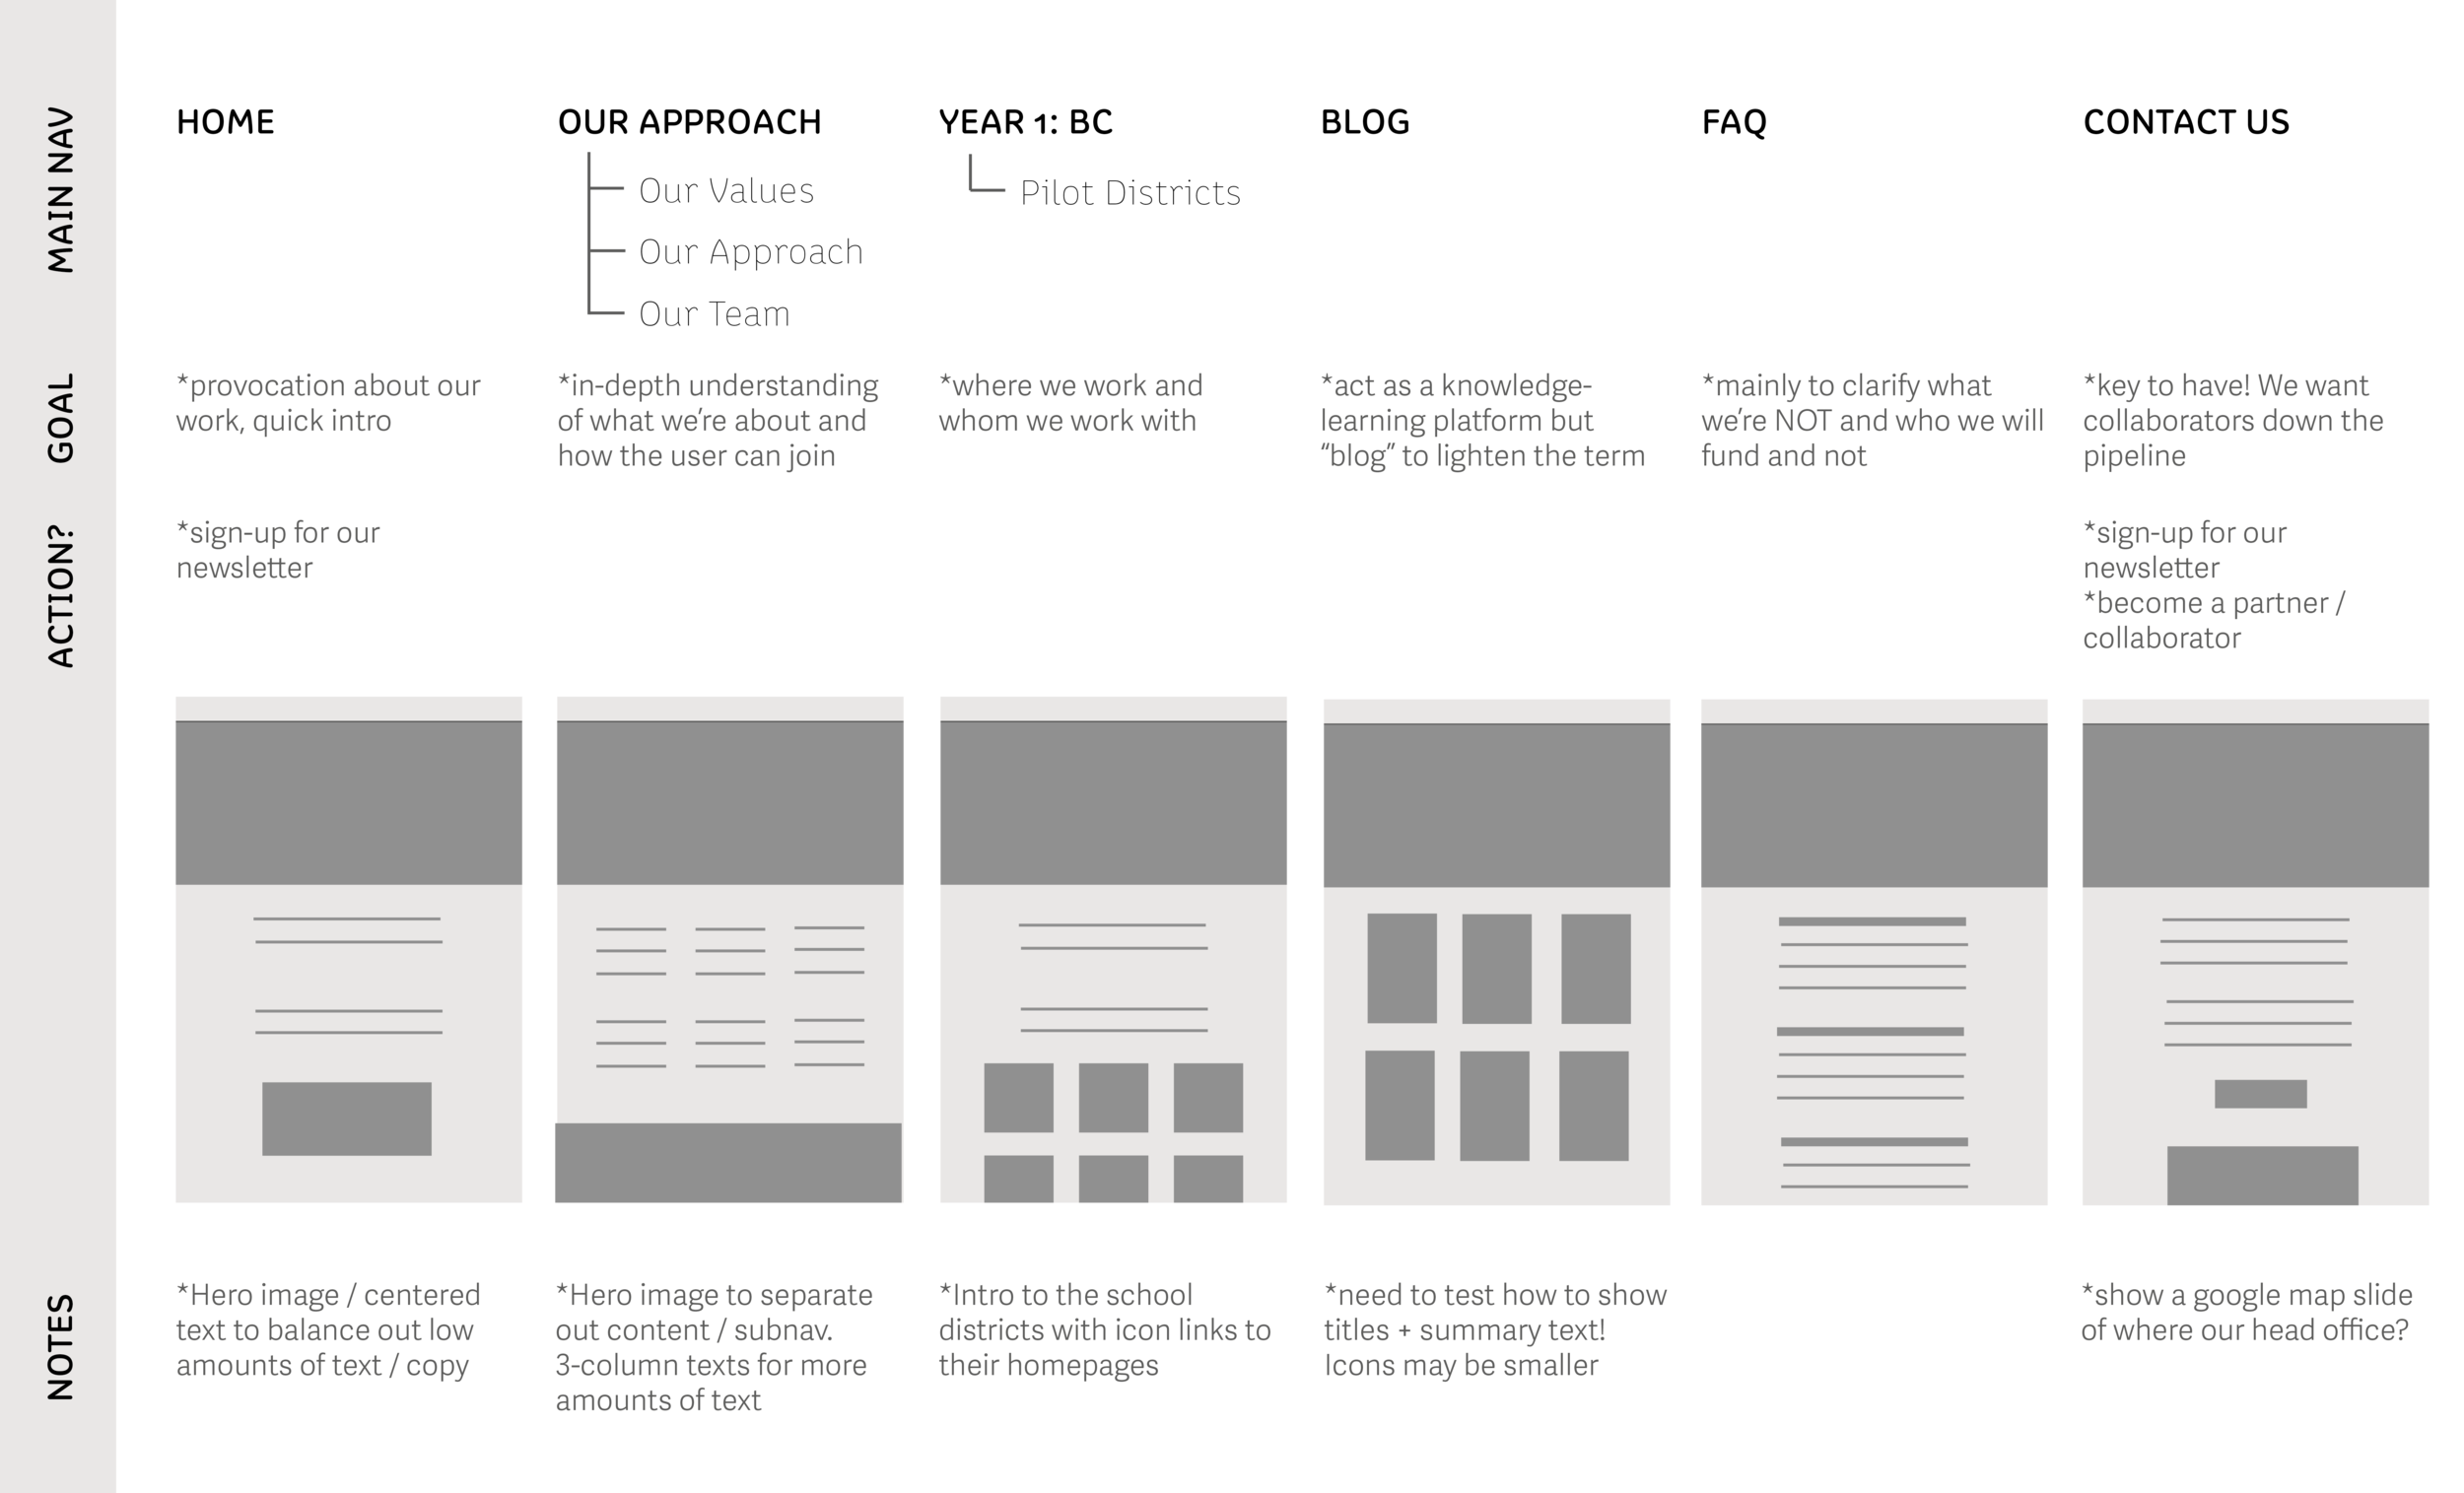 Overall information architecture and wireframing